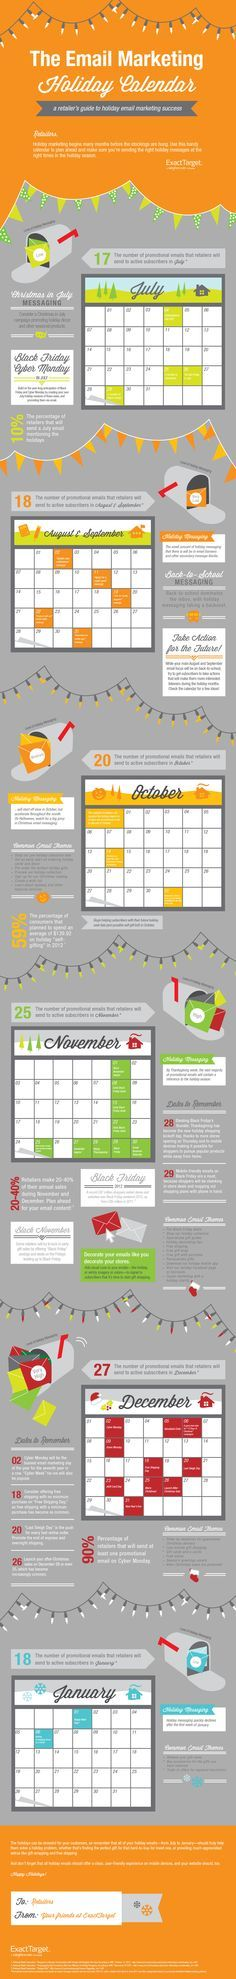 Holidays In August: A Holiday Email Marketing Schedule #infographic